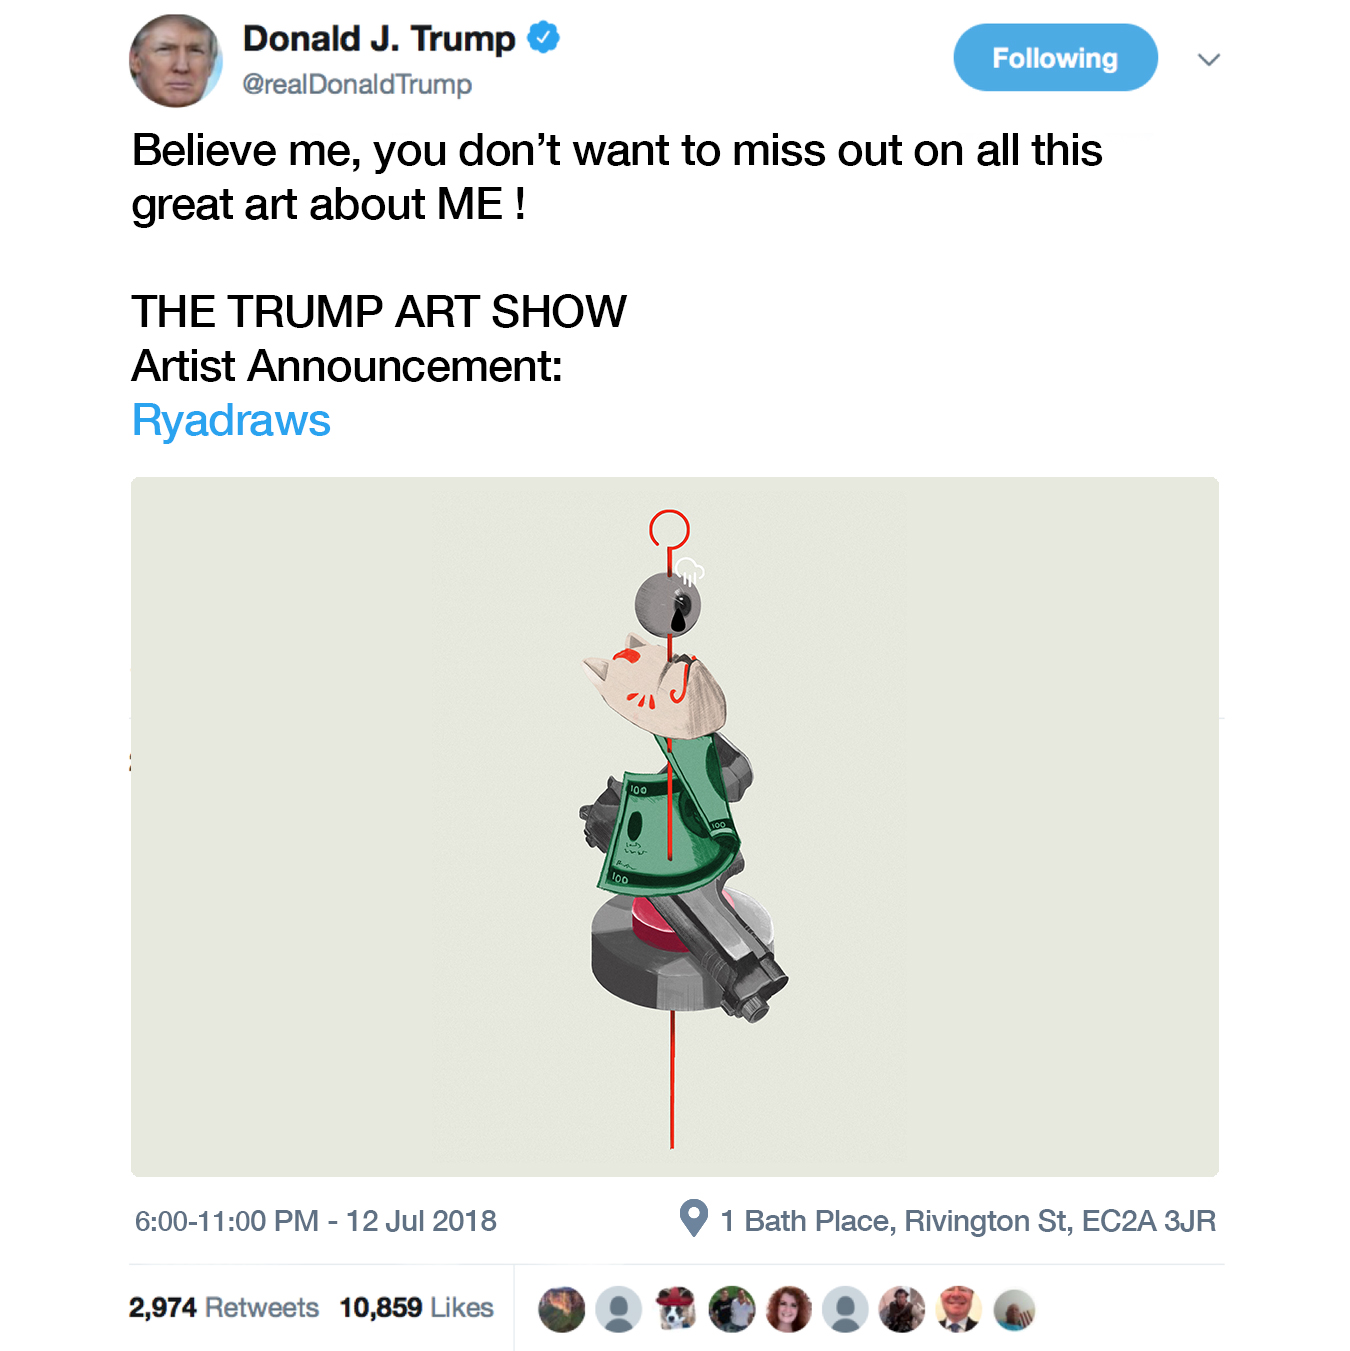 The Anti Trump Art Show promotion with Ryadraws' artwork